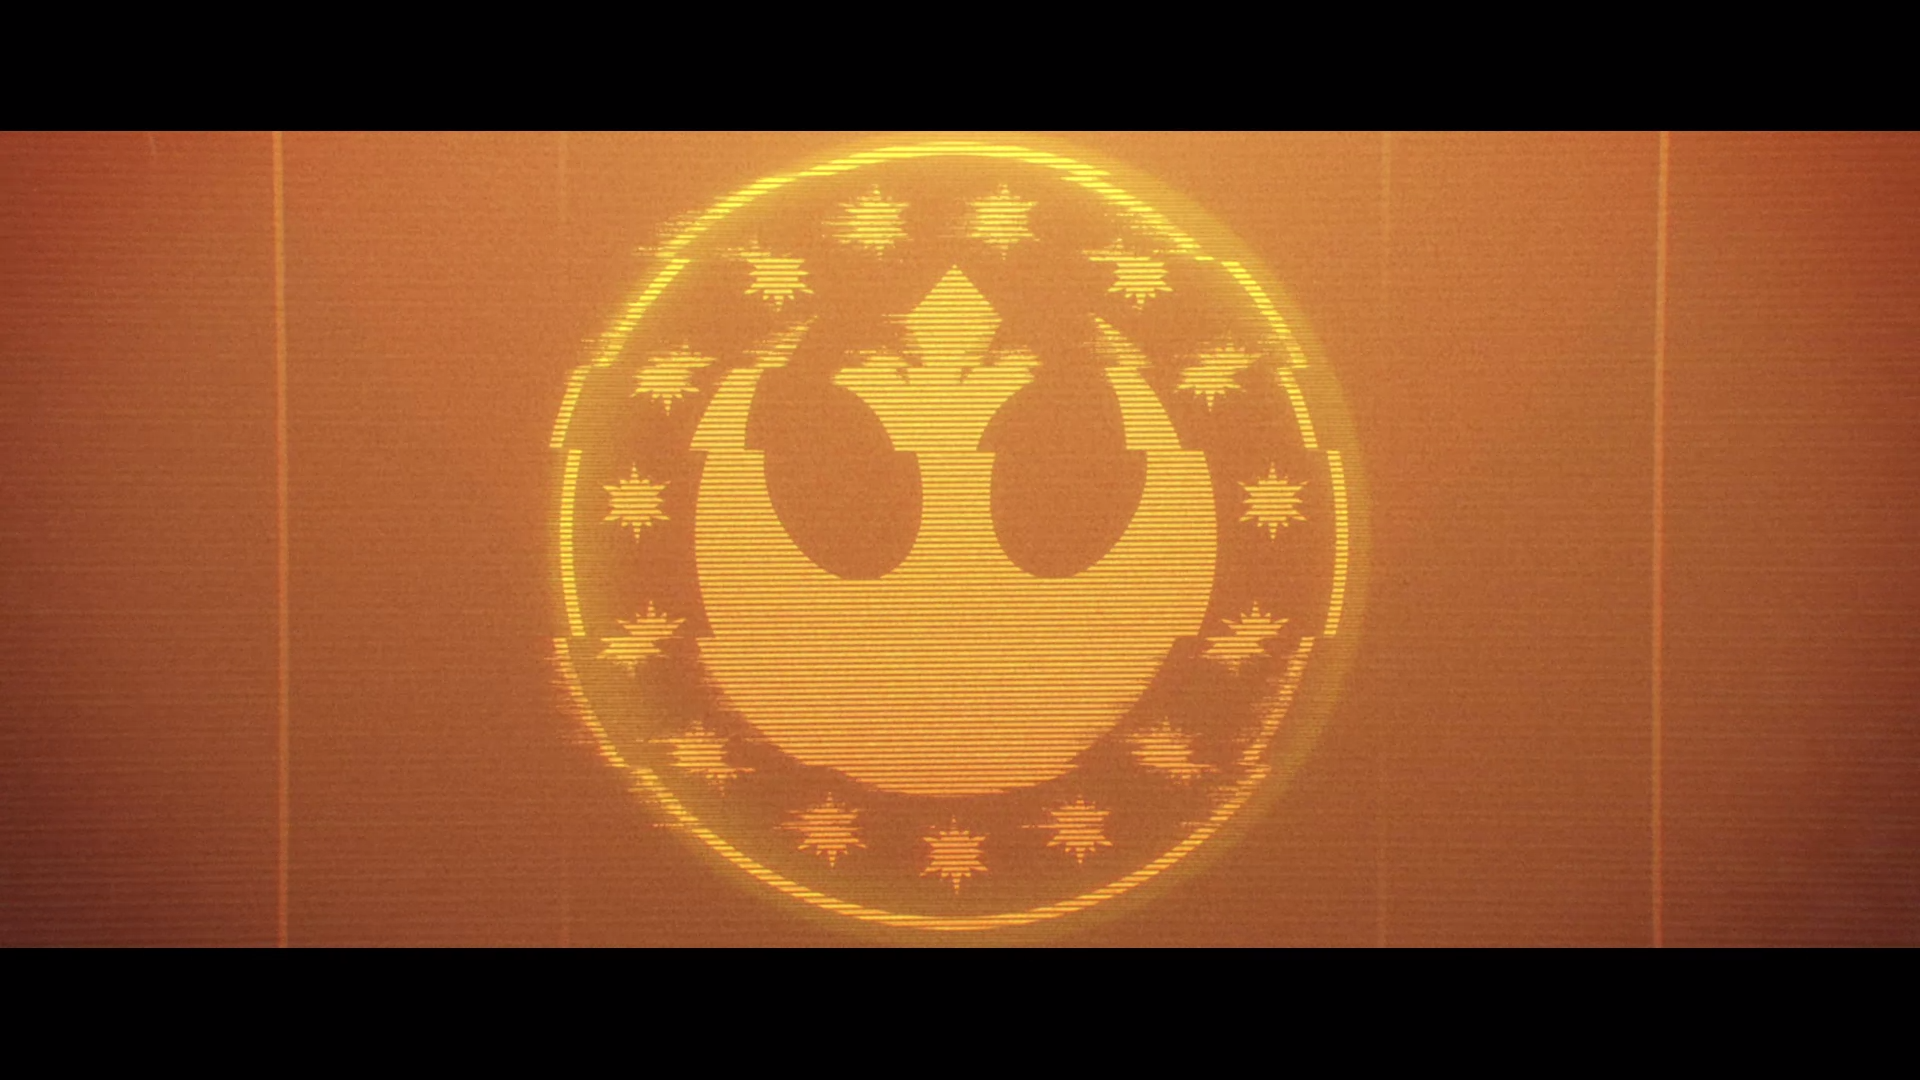 The Rebel logo in Star Wars: Squadrons